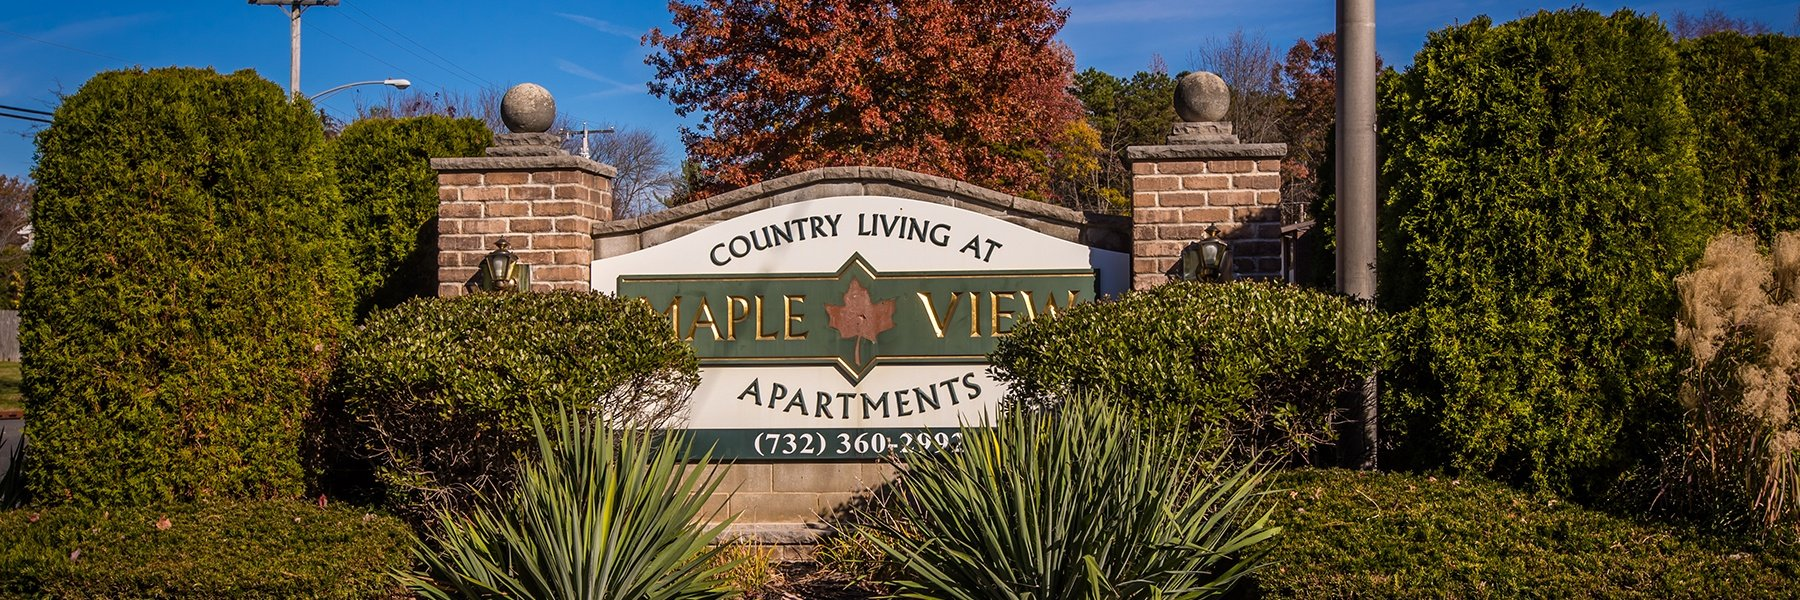 Country Living at Mapleview Apartments For Rent in Old Bridge, NJ Welcome